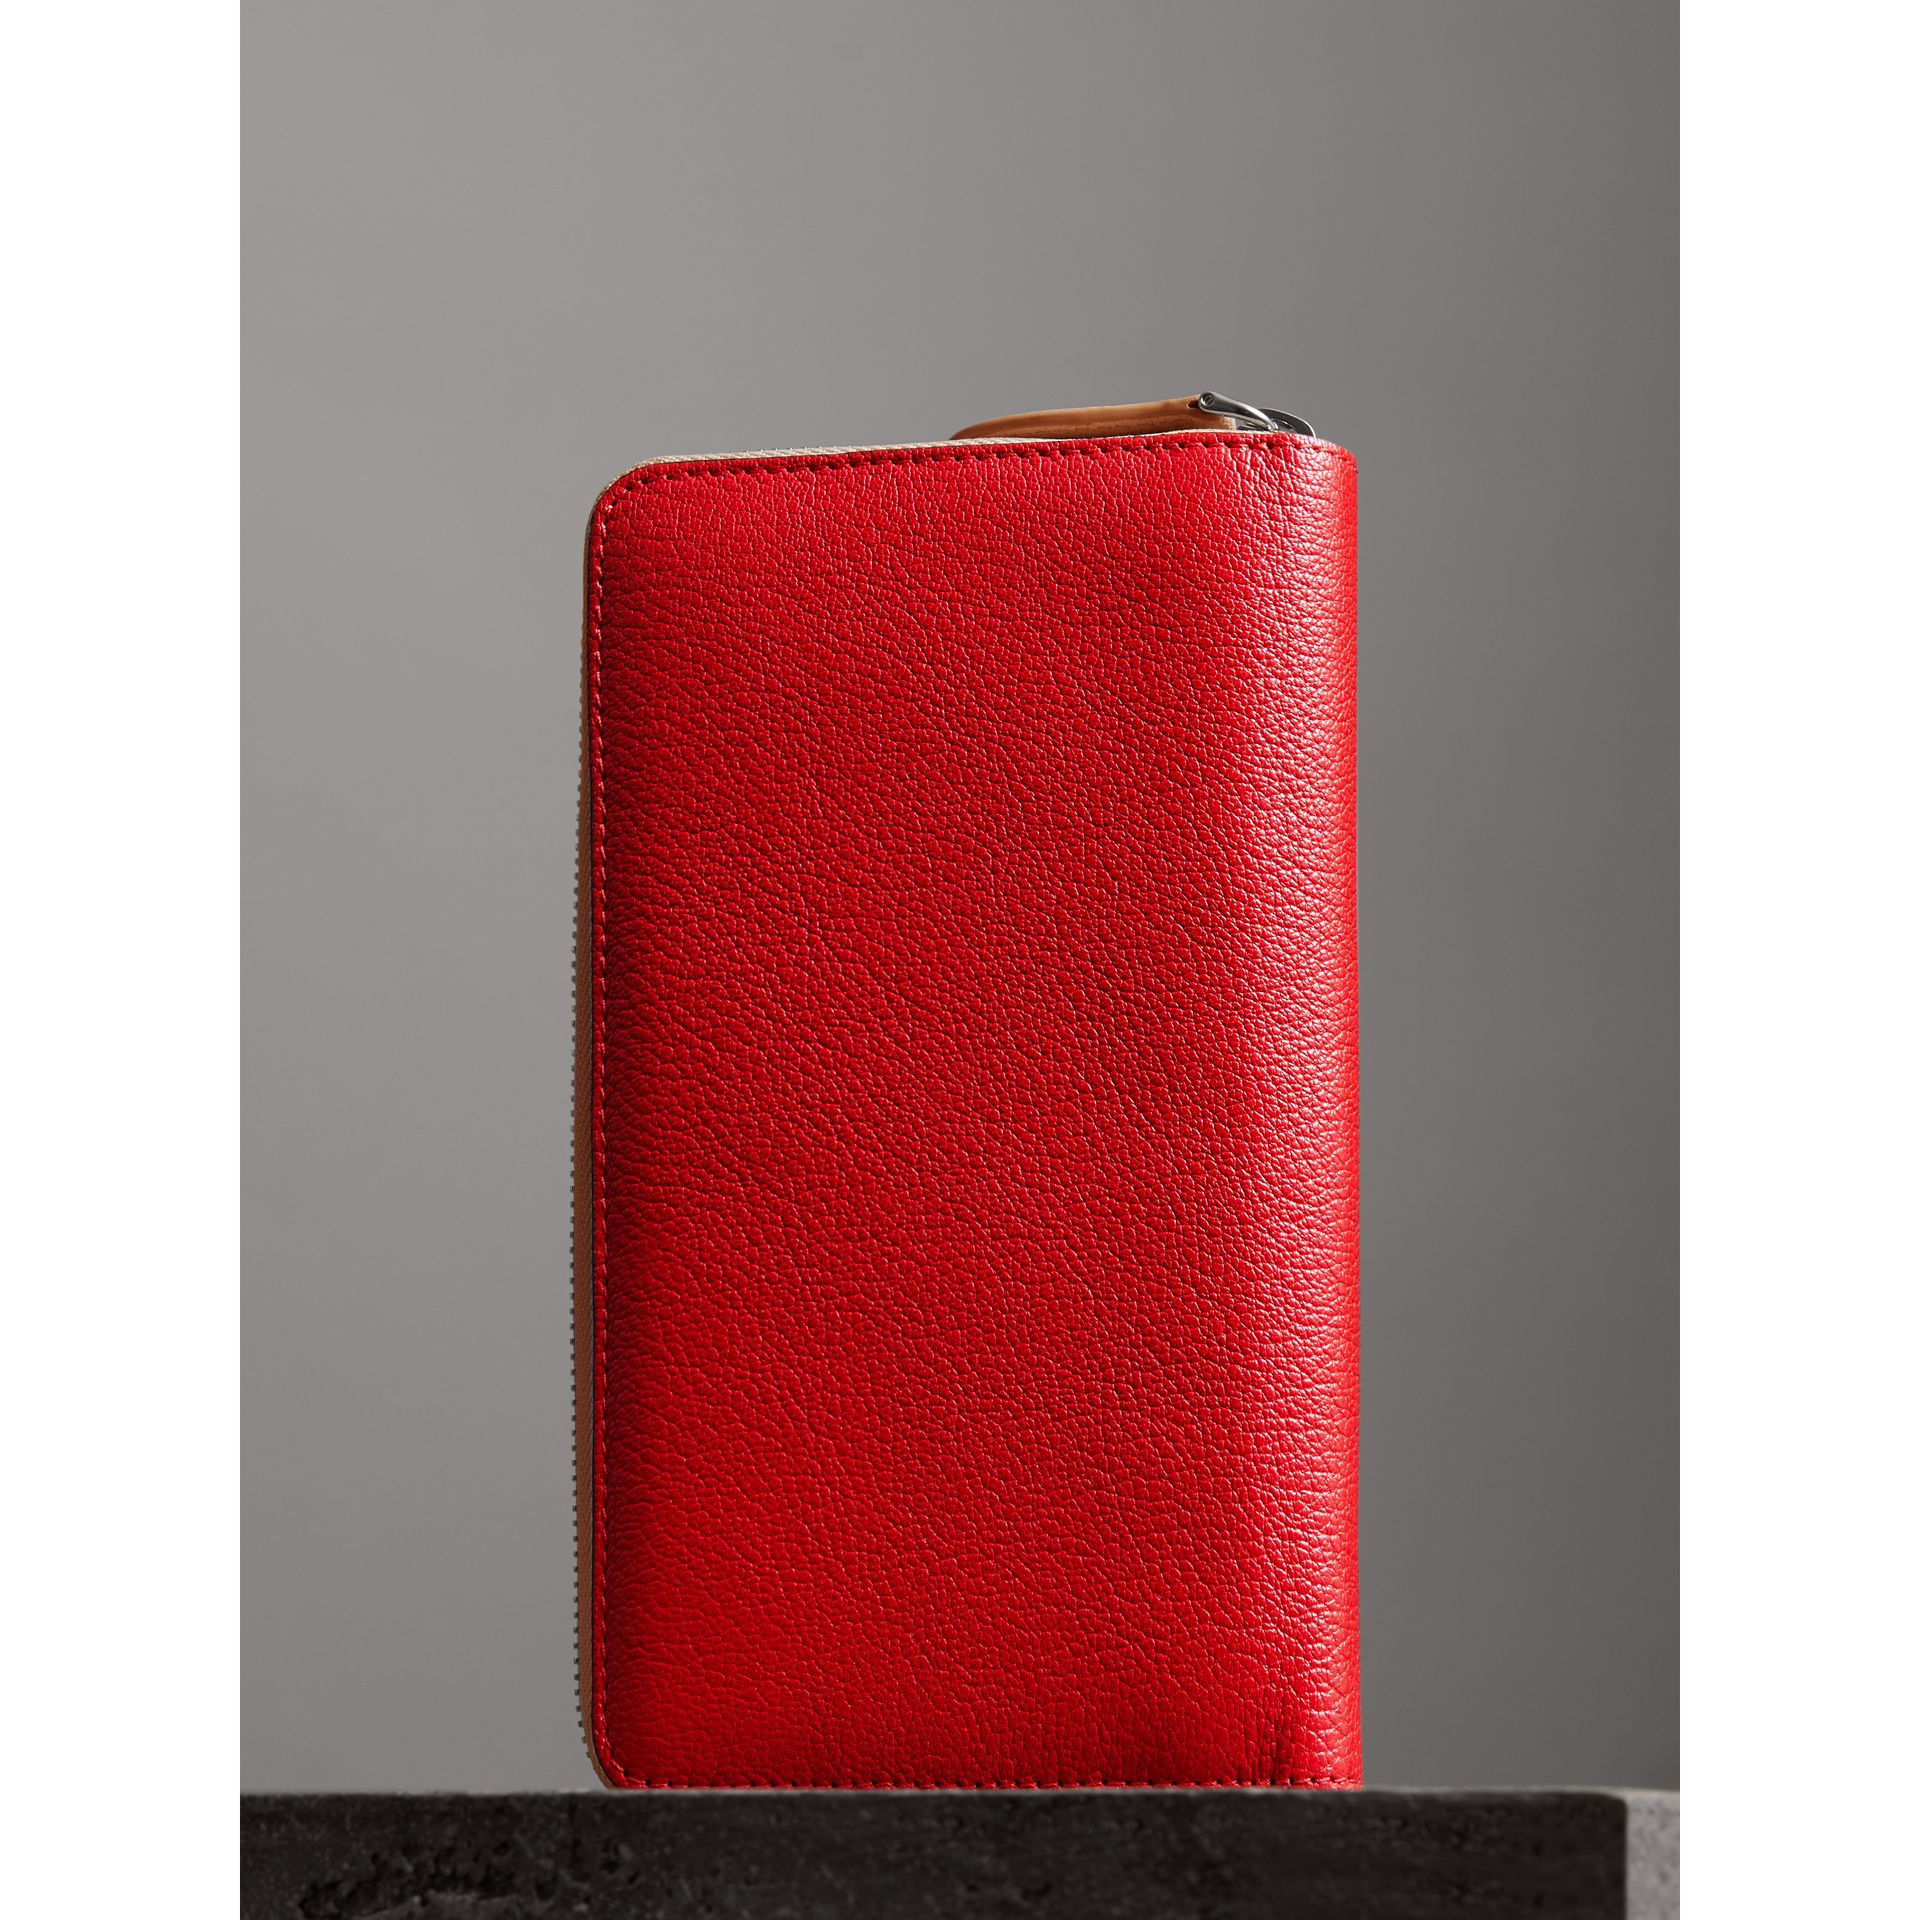 Two-tone Leather Ziparound Wallet in Bright Red - Men | Burberry United Kingdom - gallery image 2